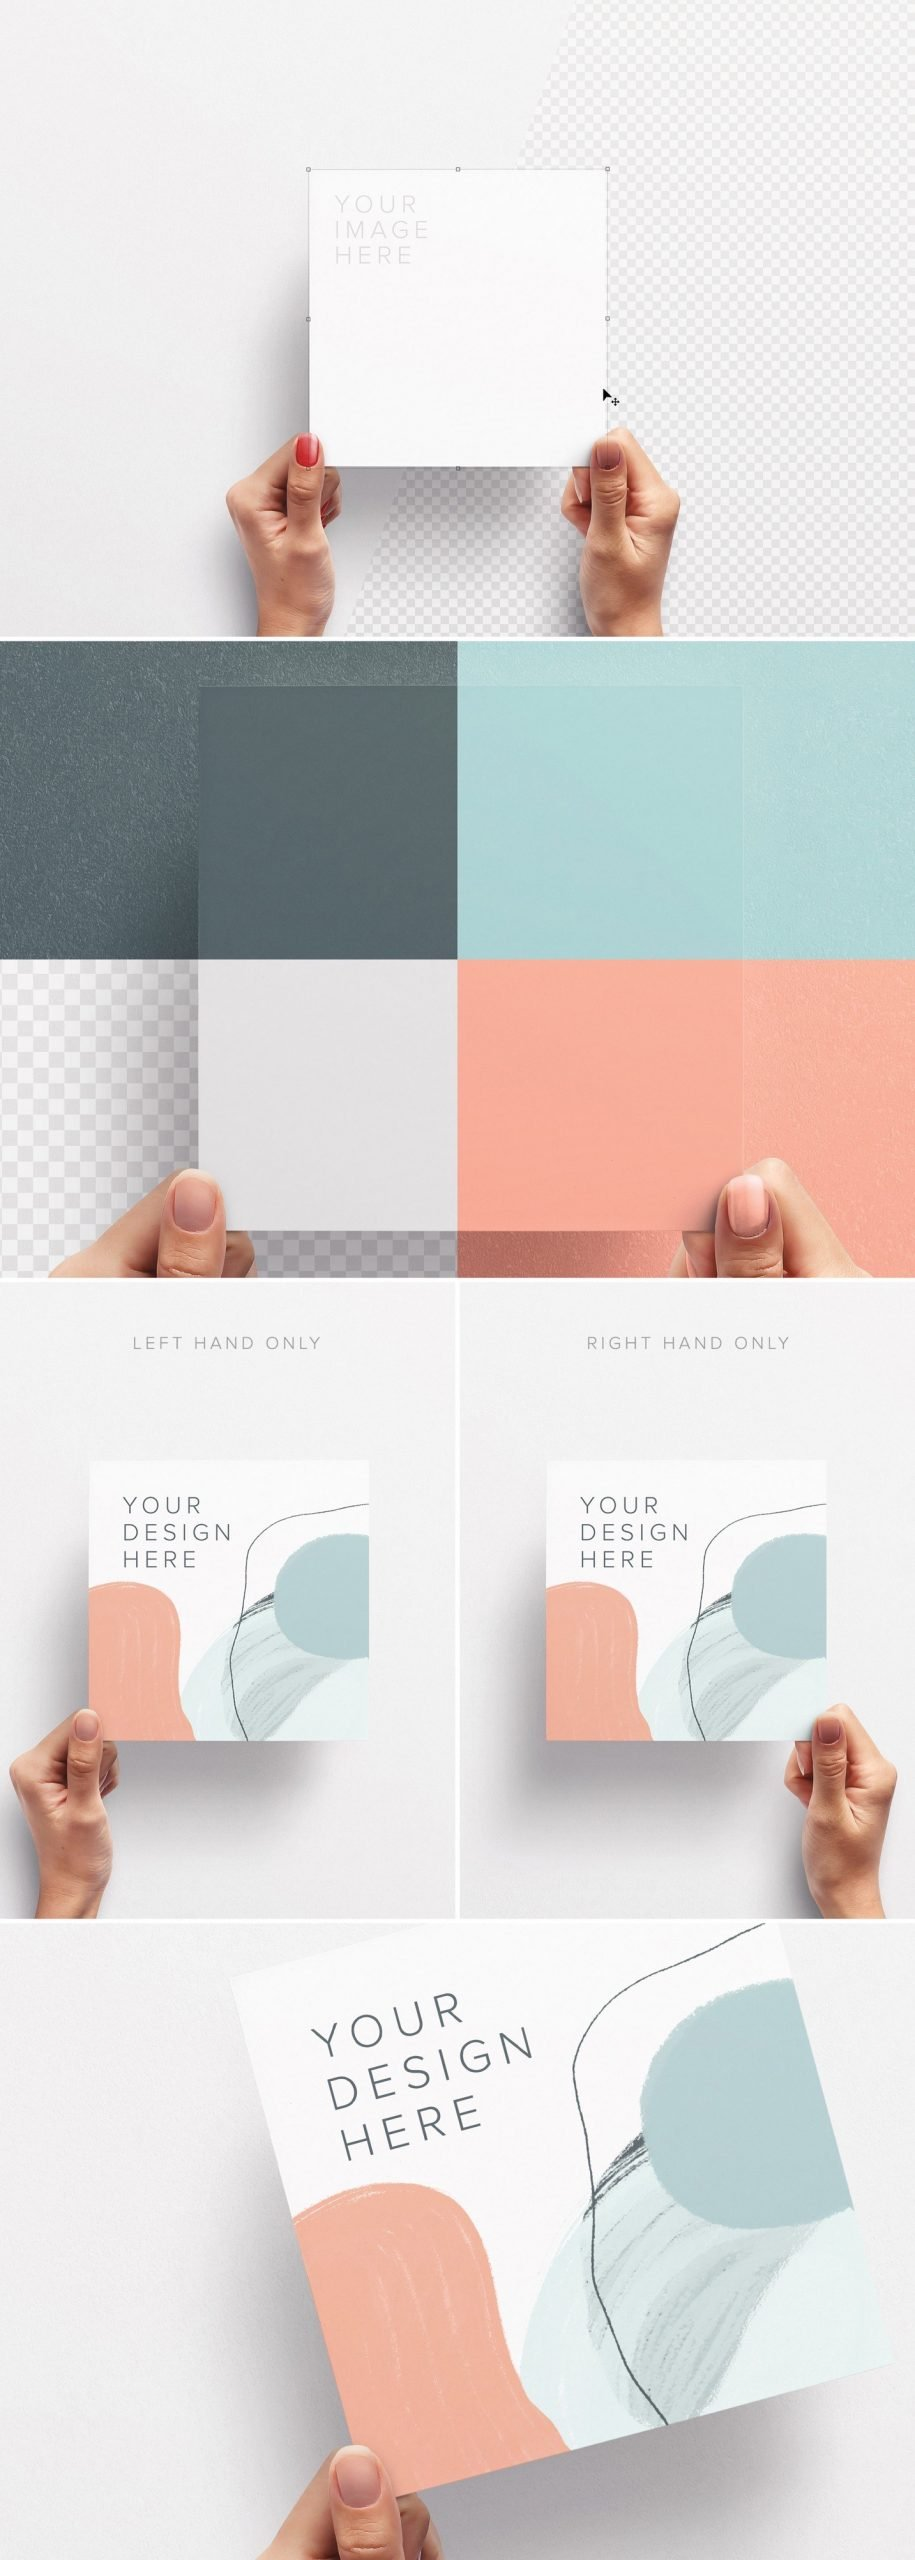 hands holding square paper mockup preview1 1 scaled